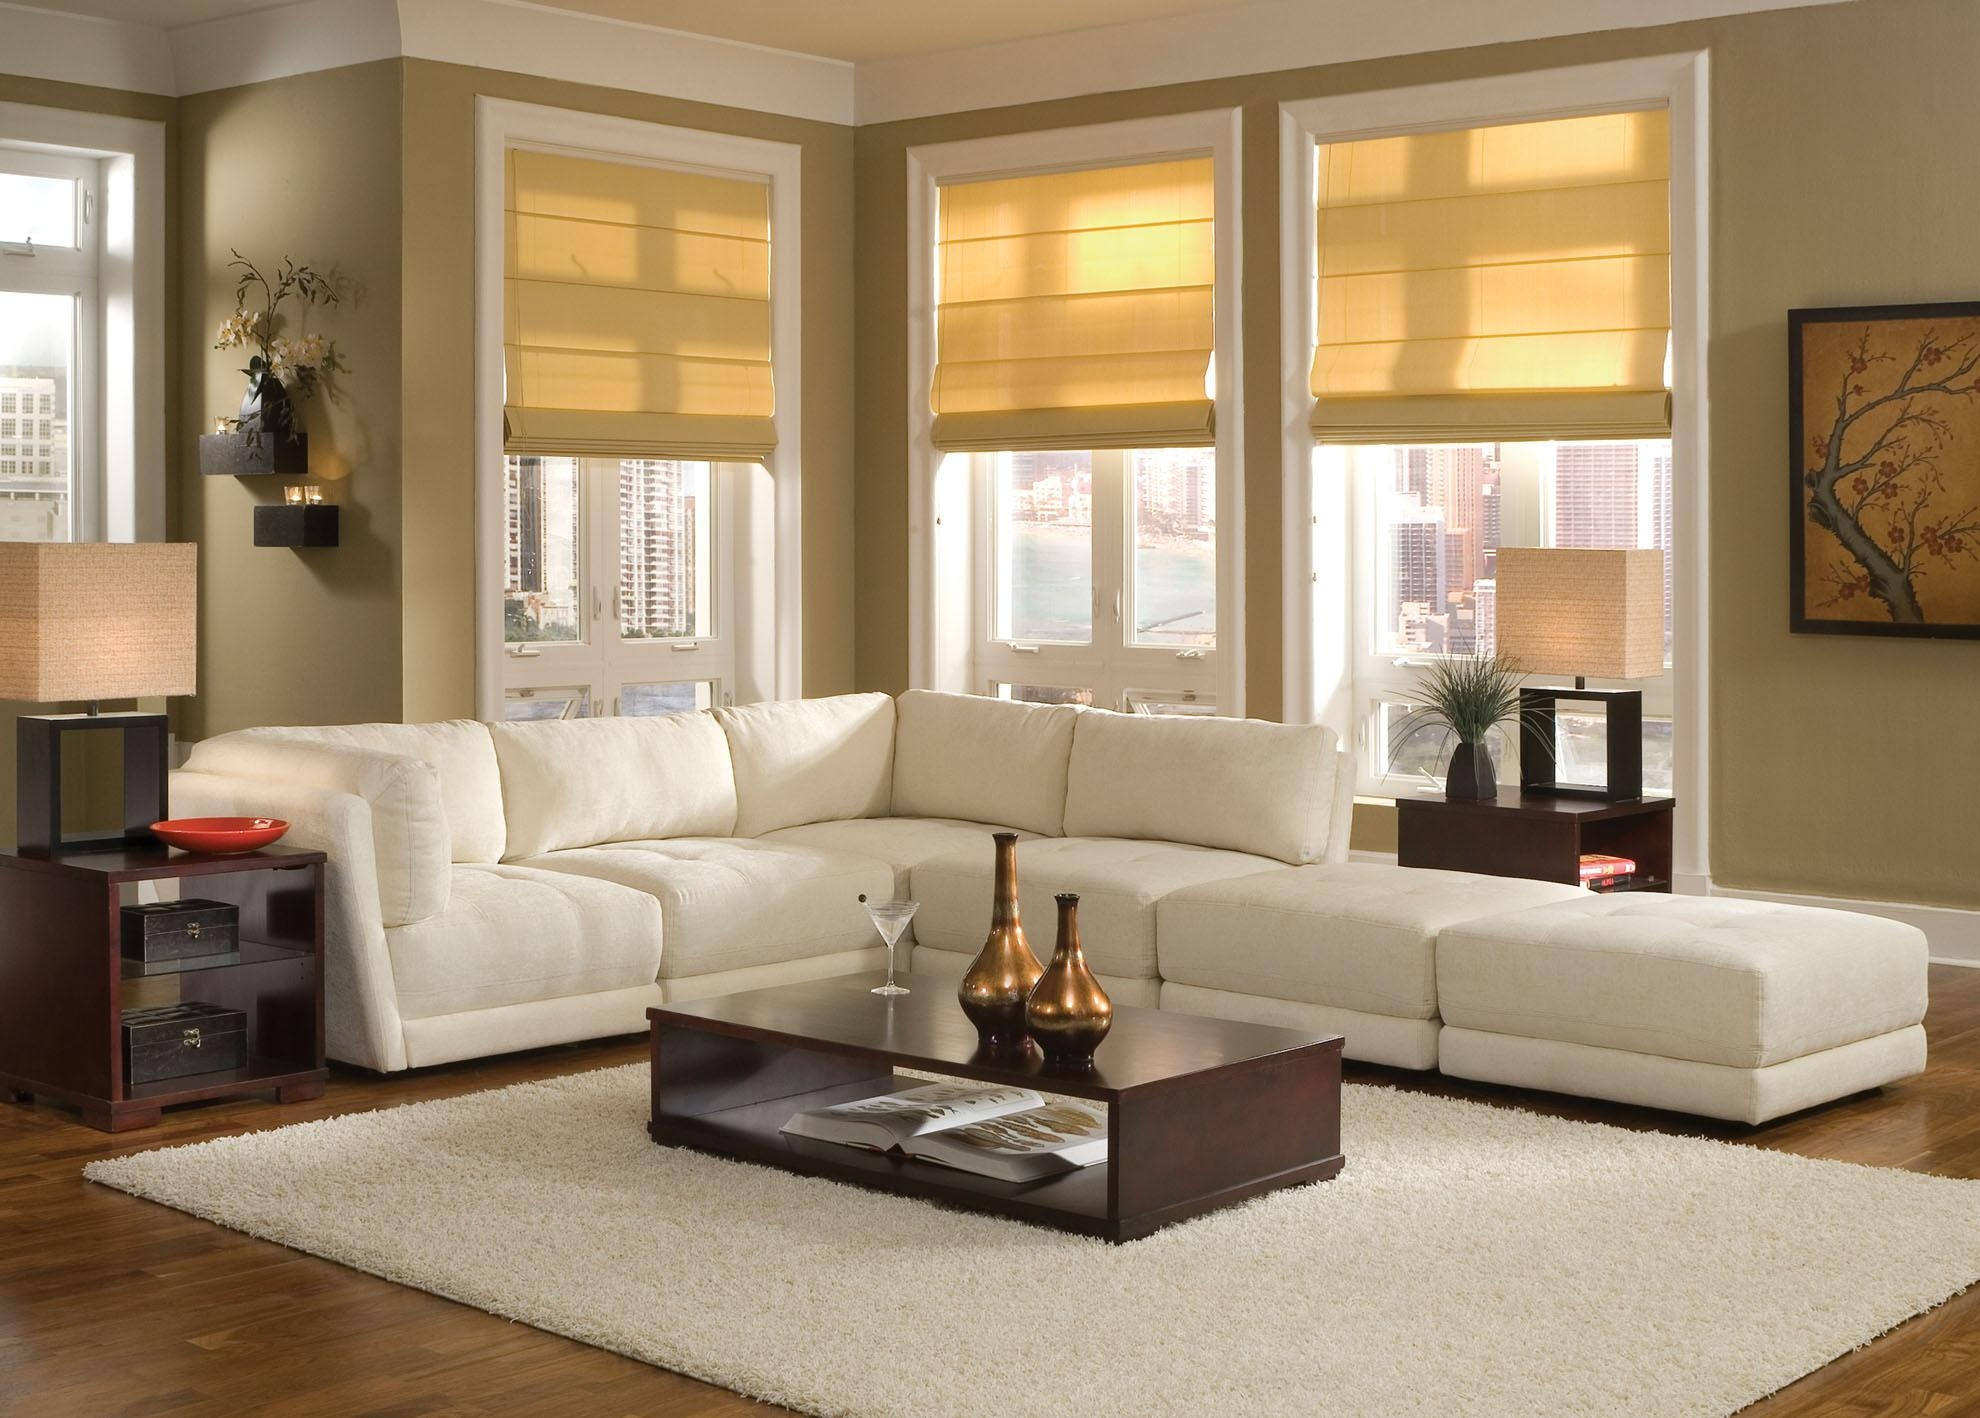 White Sofa Design Ideas & Pictures For Living Room Within Small Lounge Sofas (View 11 of 20)